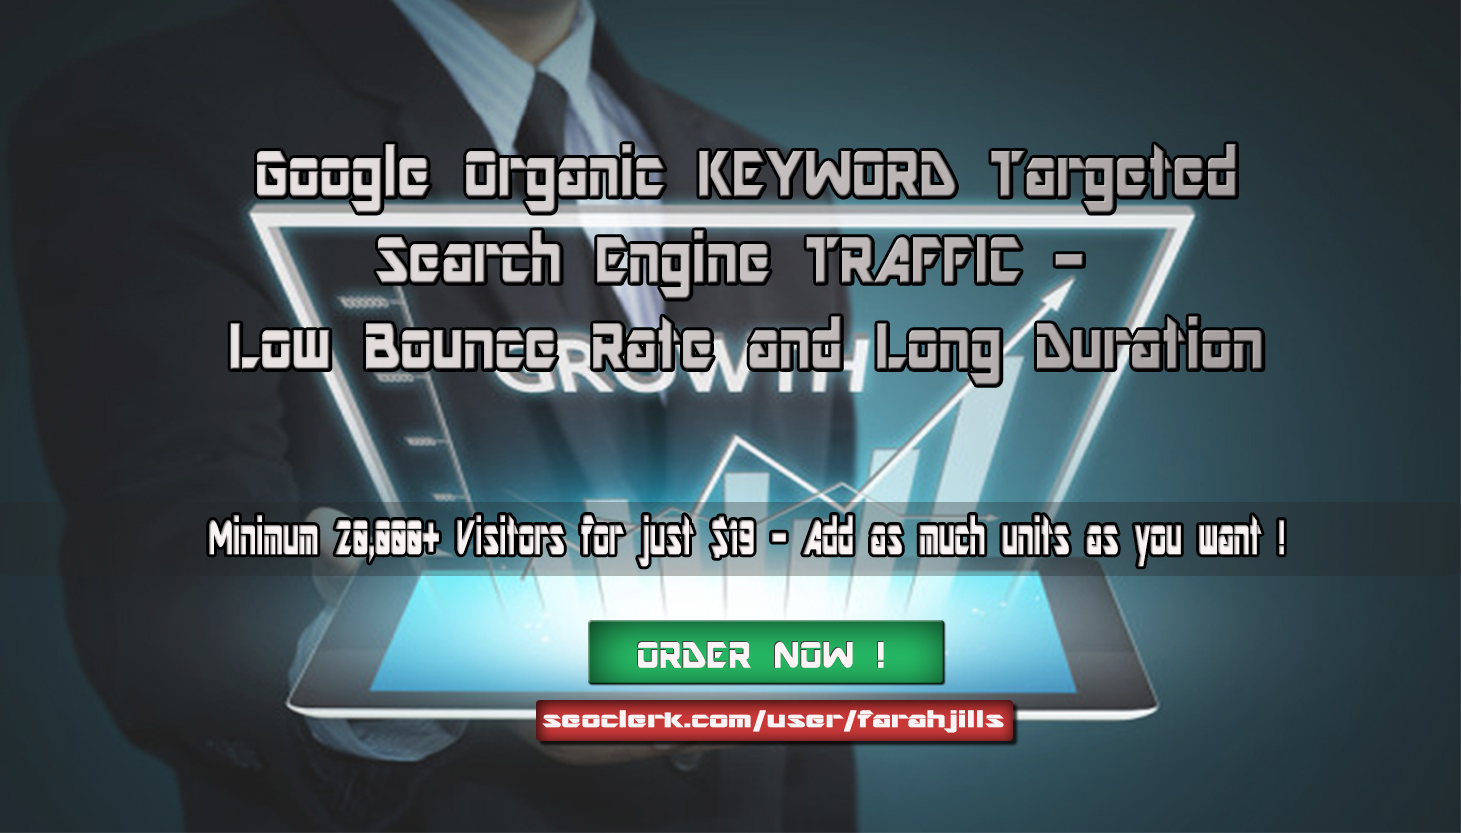 5K Keyword Target Organic TRAFFIC to Increase Website SERP Ranking